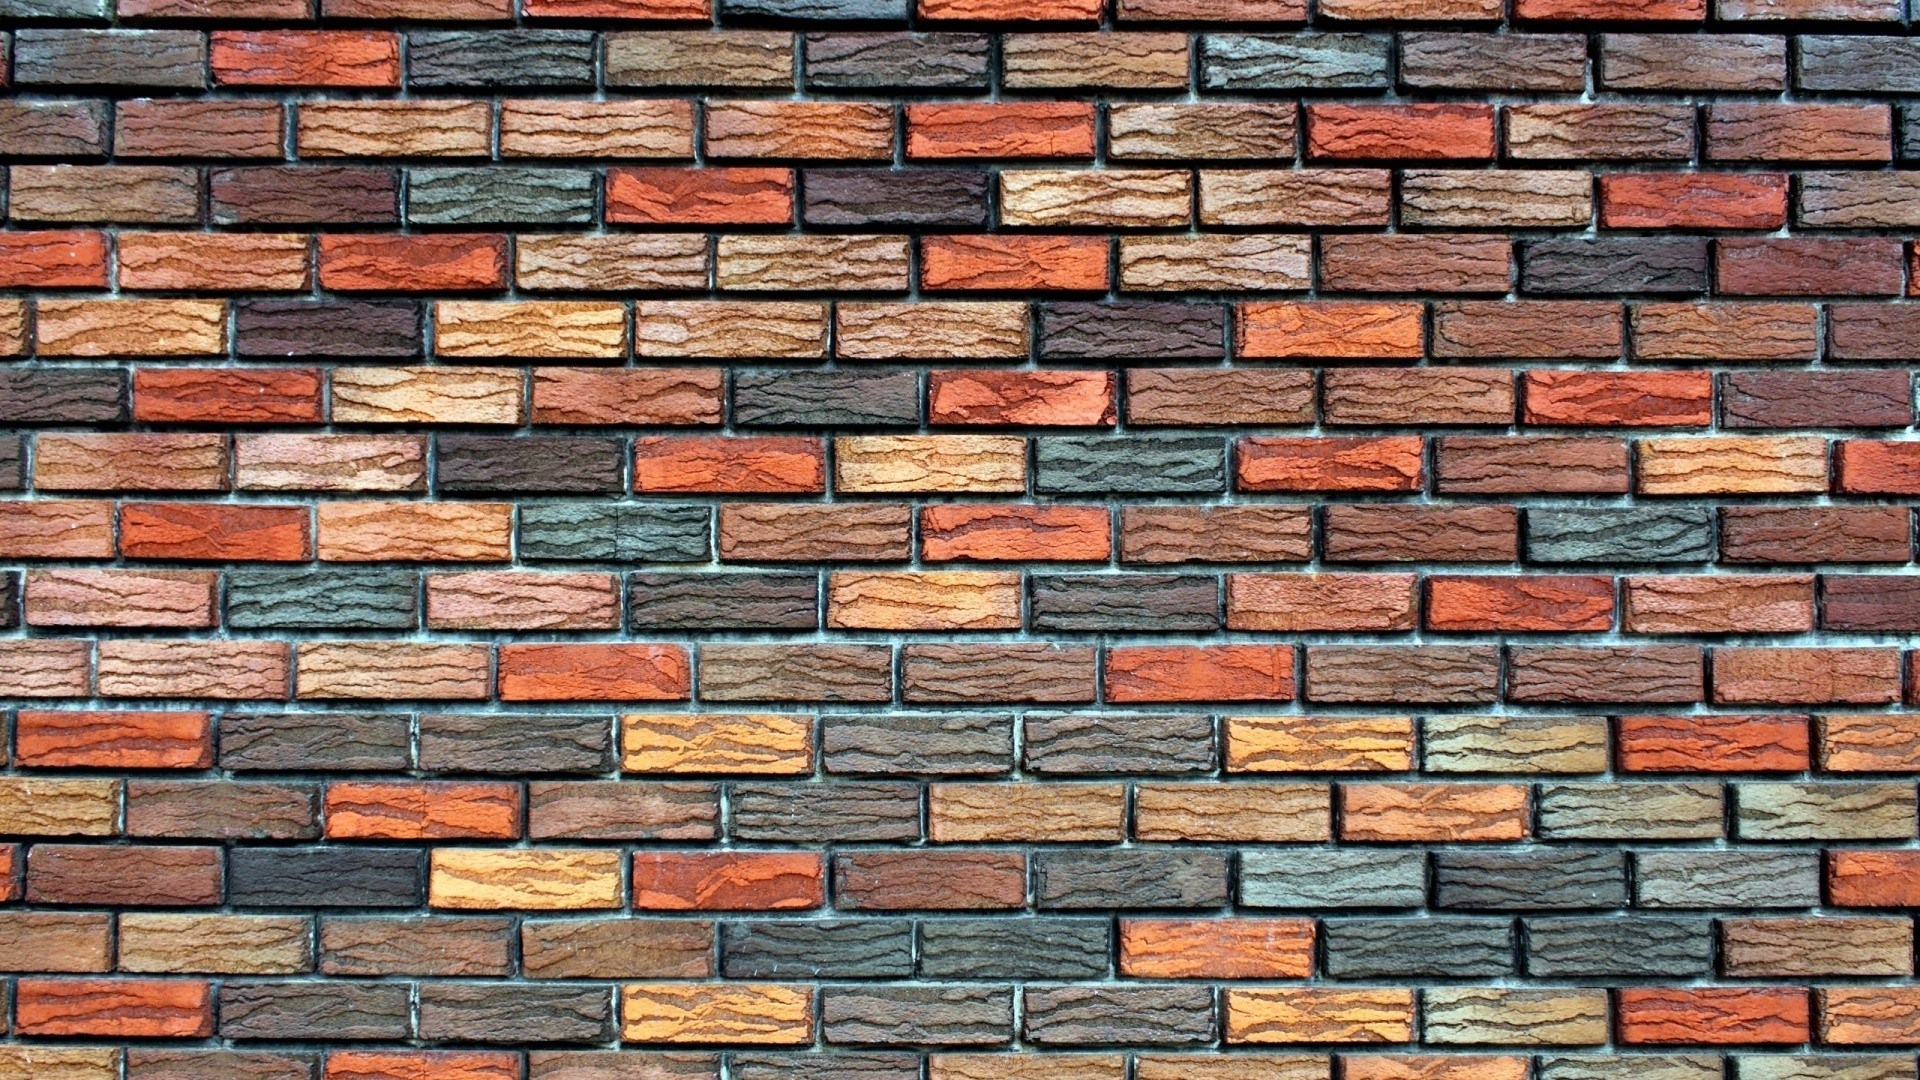 Brick Wallpaper 13